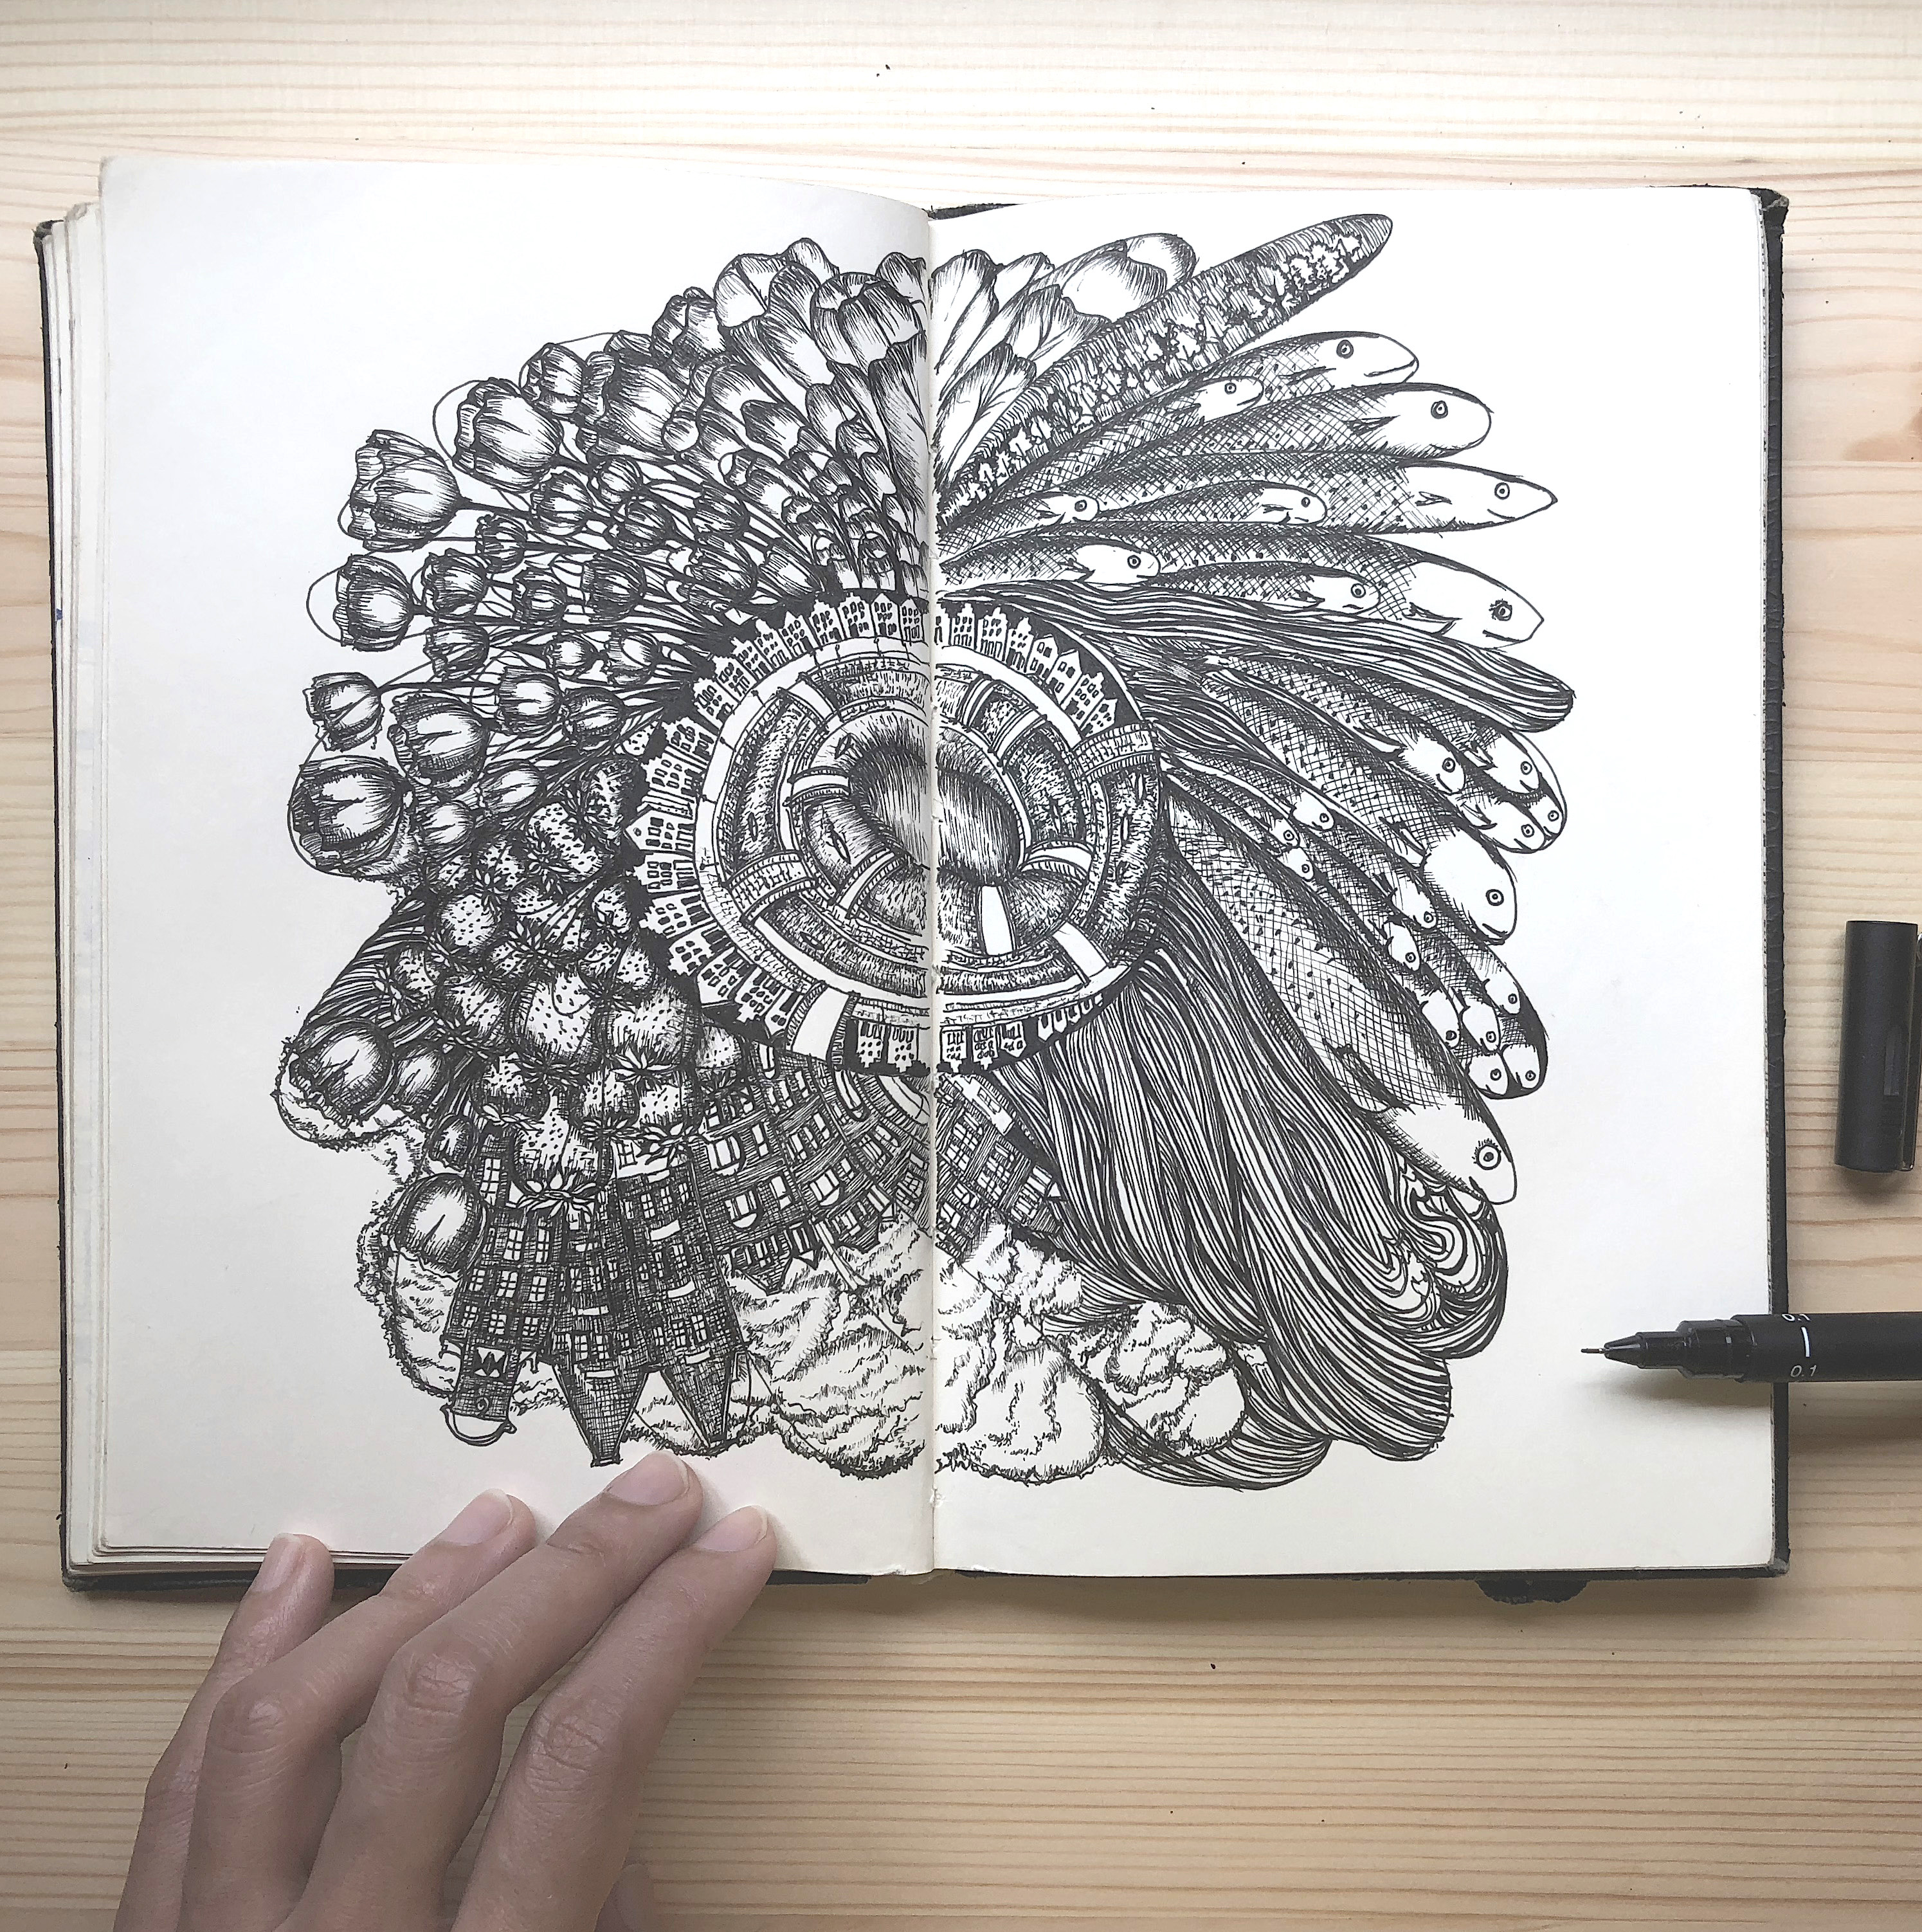 Otherworldly Drawings